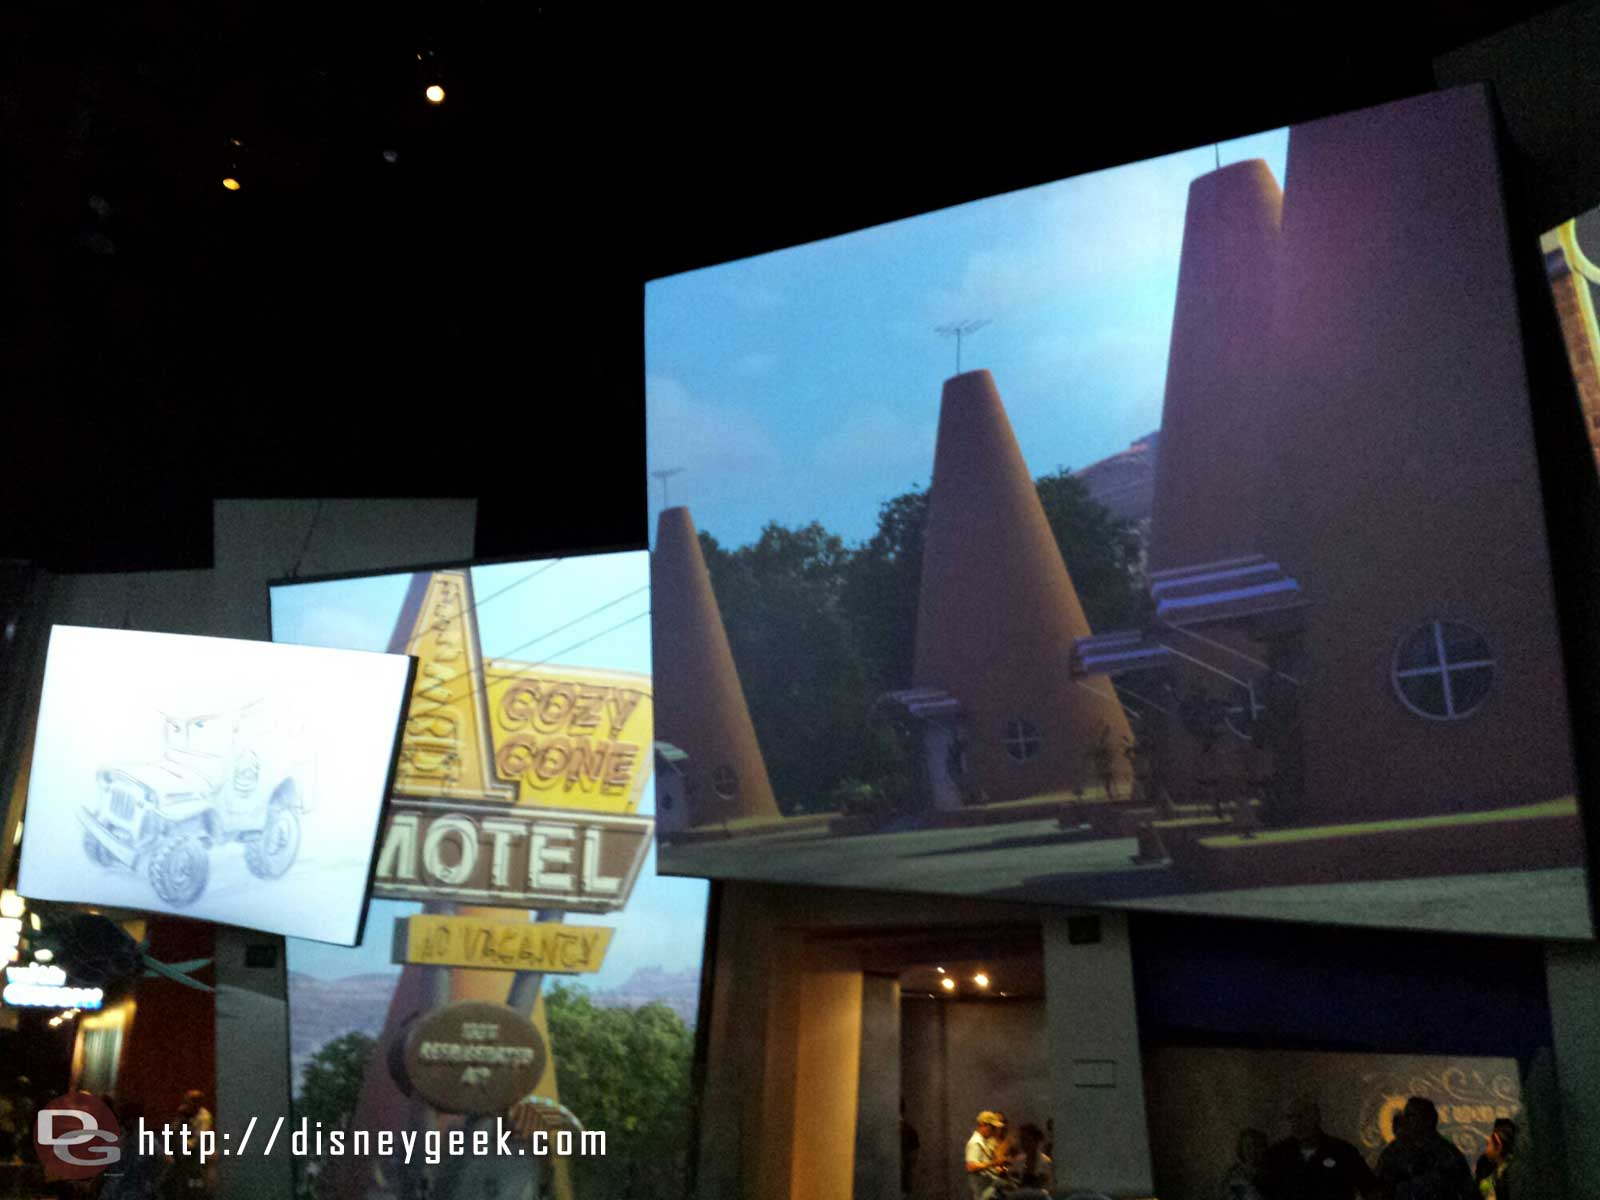 The Animation building lobby – Cars on the screens #HollywoodLand